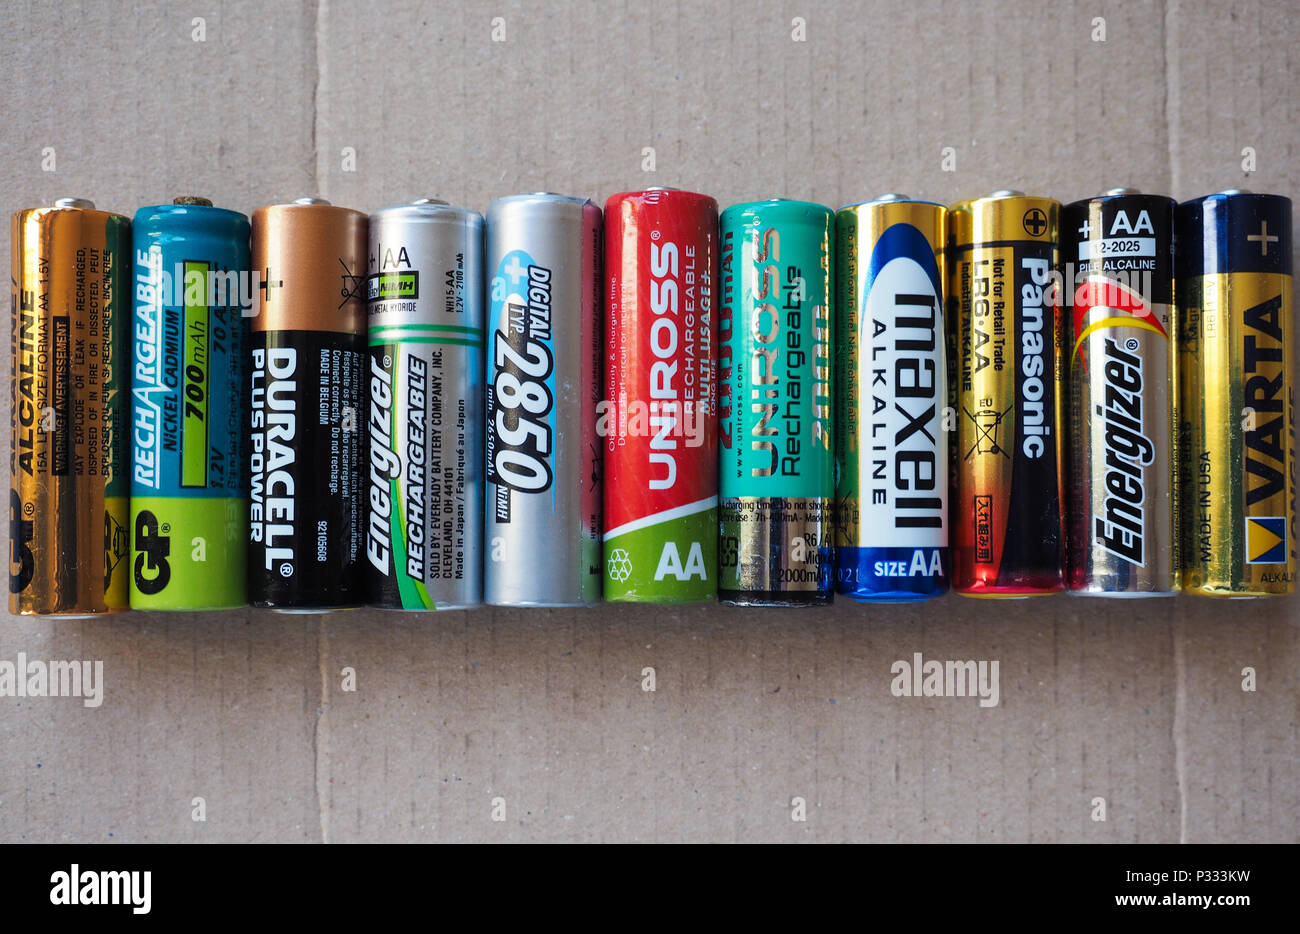 BERLIN, GERMANY - CIRCA MAY 2018: AA batteries of many different brands including GP Duracell Energizer Ansmann Uniross Maxell Panasonic Varta Stock Photo